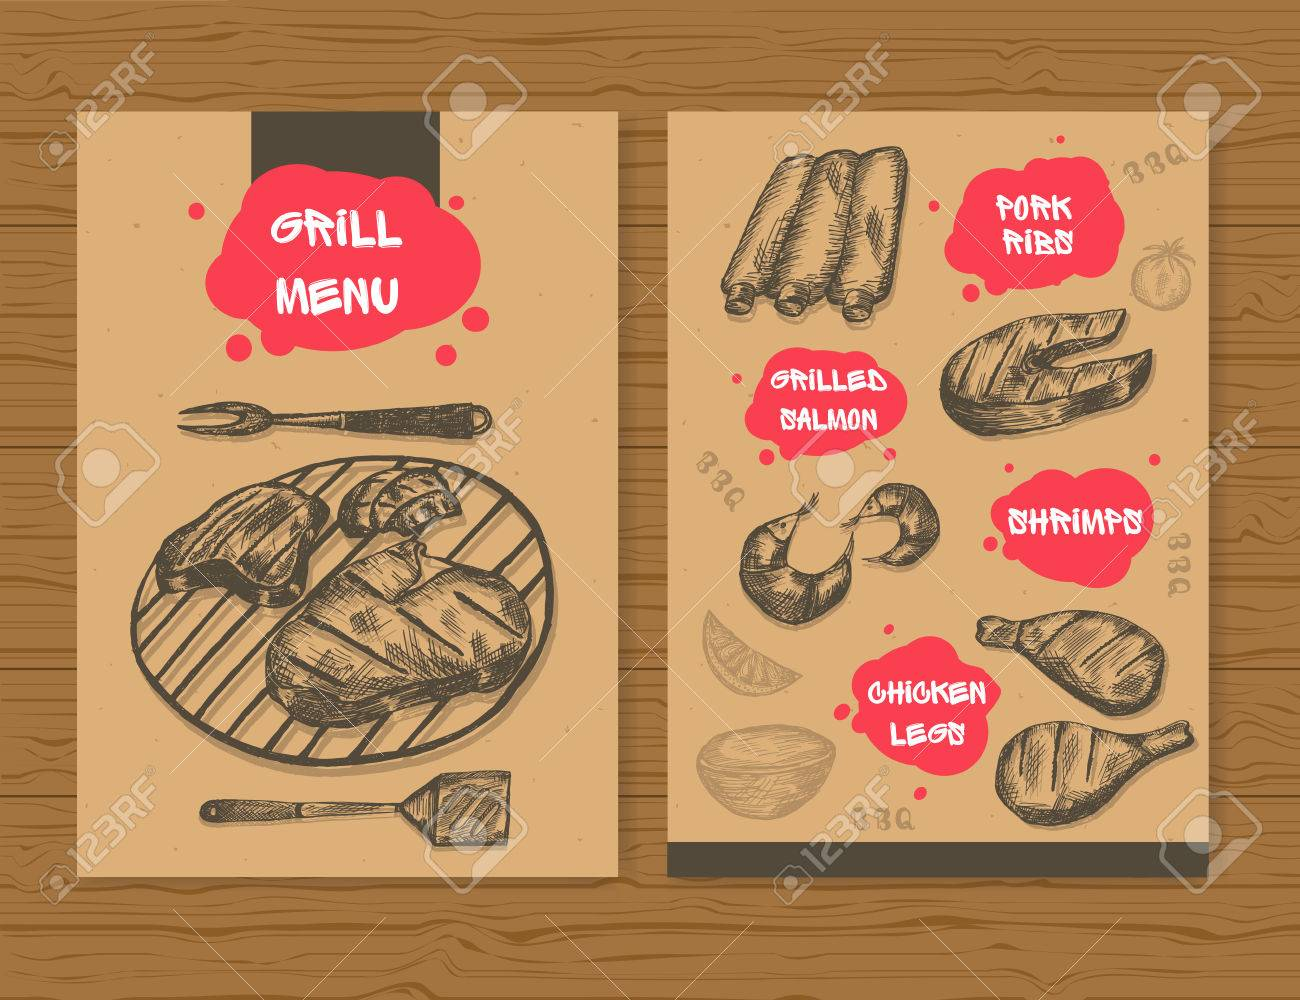 grill menu template ready design bbq menu for restaurant bar